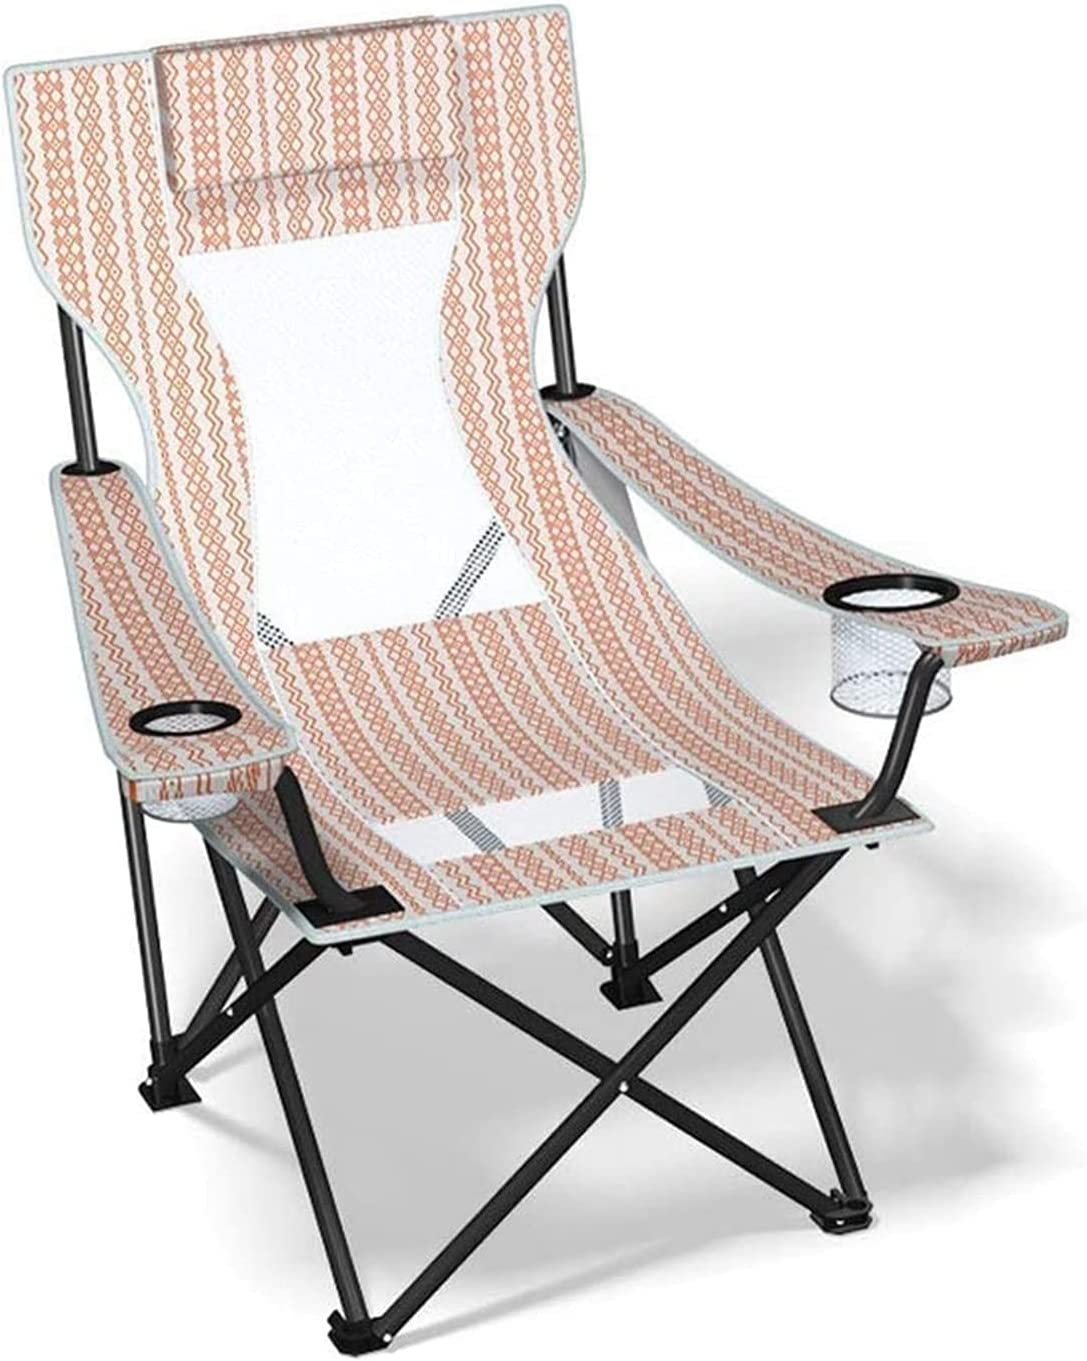 Tolalo Camping Folding Chair discount Heavy Steel Max 77% OFF Fish Frame Duty Support